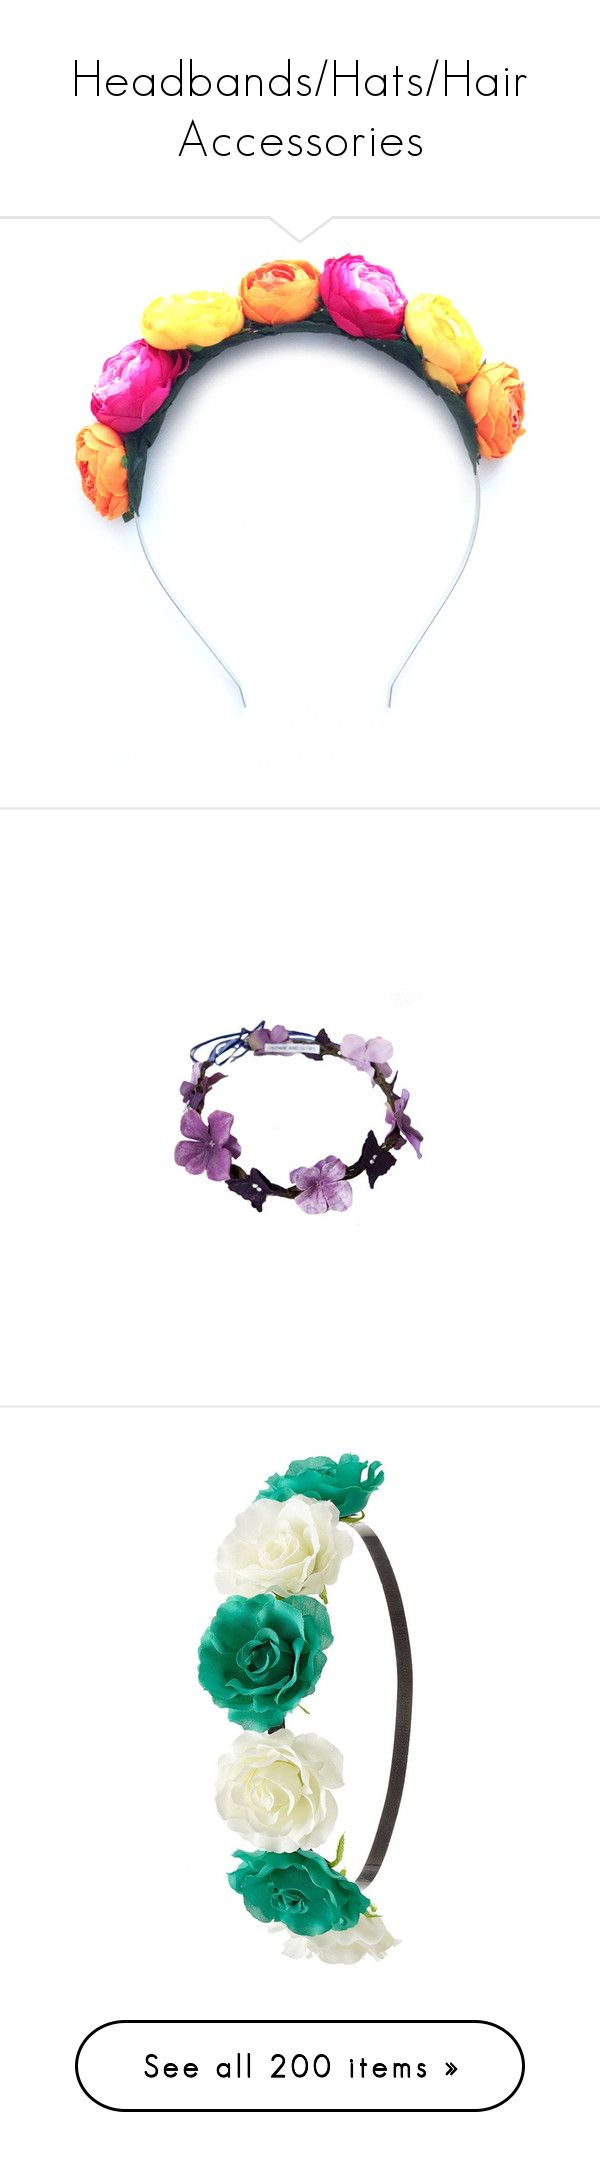 """Headbands/Hats/Hair Accessories"" by animefashiondj ❤ liked on Polyvore featuring accessories, hair accessories, flower crown, multicolour, flower garland headband, floral garland, crown headband, flower wreath headband, flower garland and hair"